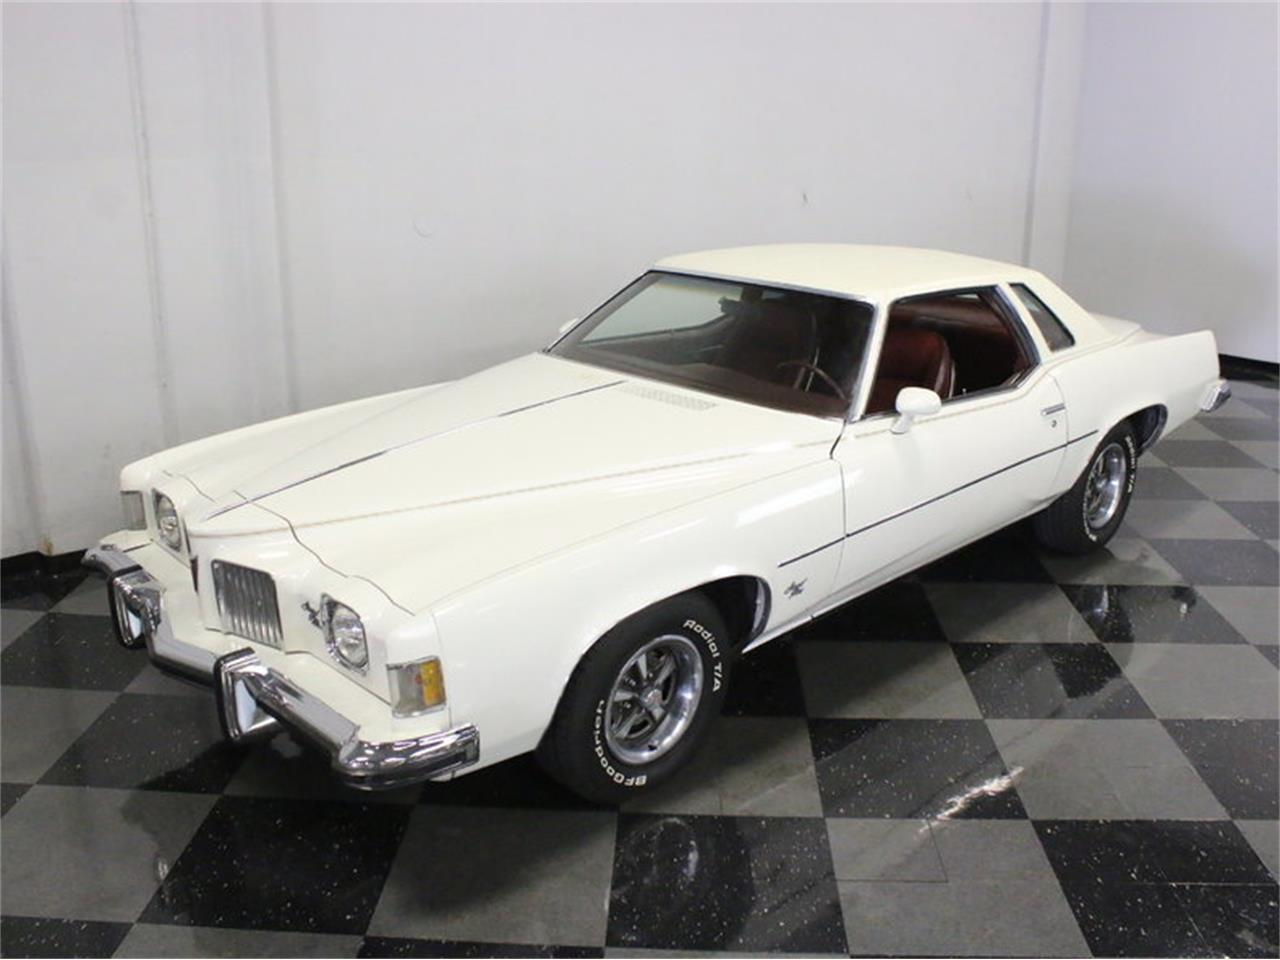 Large Picture of Classic '73 Grand Prix Model J located in Texas - $13,995.00 Offered by Streetside Classics - Dallas / Fort Worth - L2N9